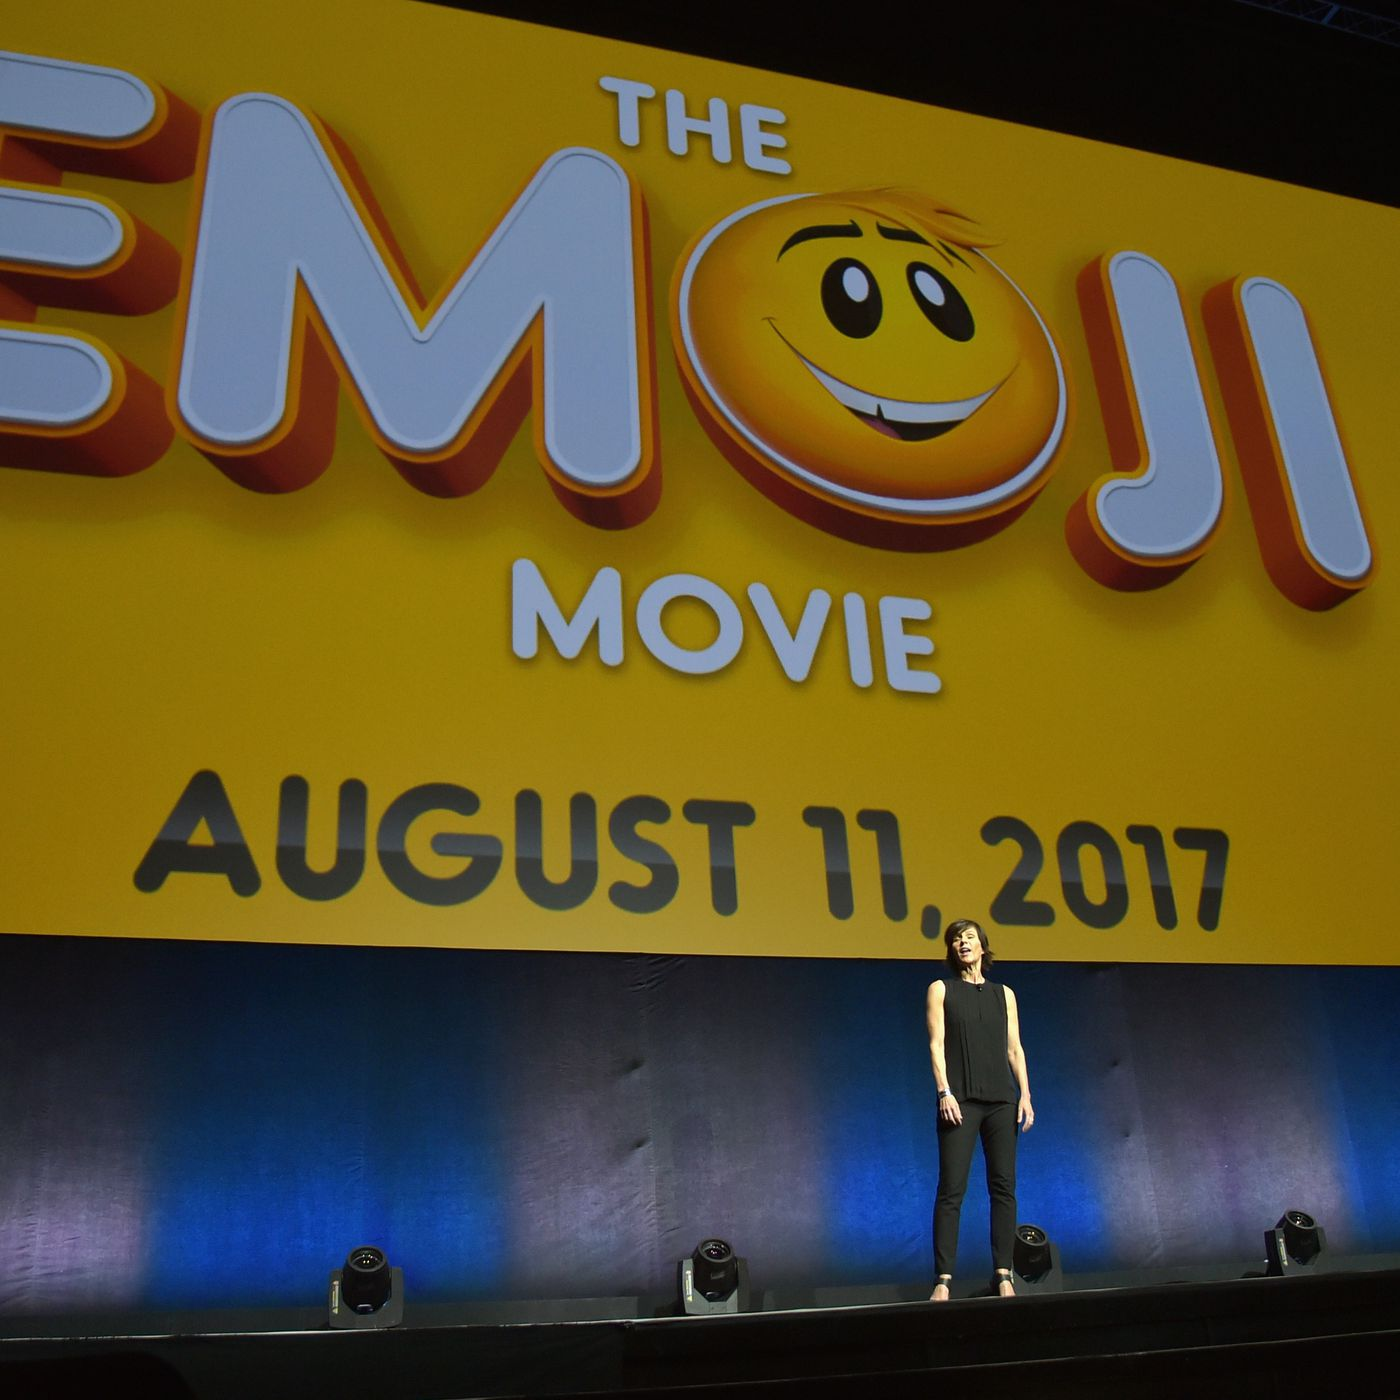 Sony S Emoji Movie Is Going To Take Place Entirely Inside A Smartphone The Verge